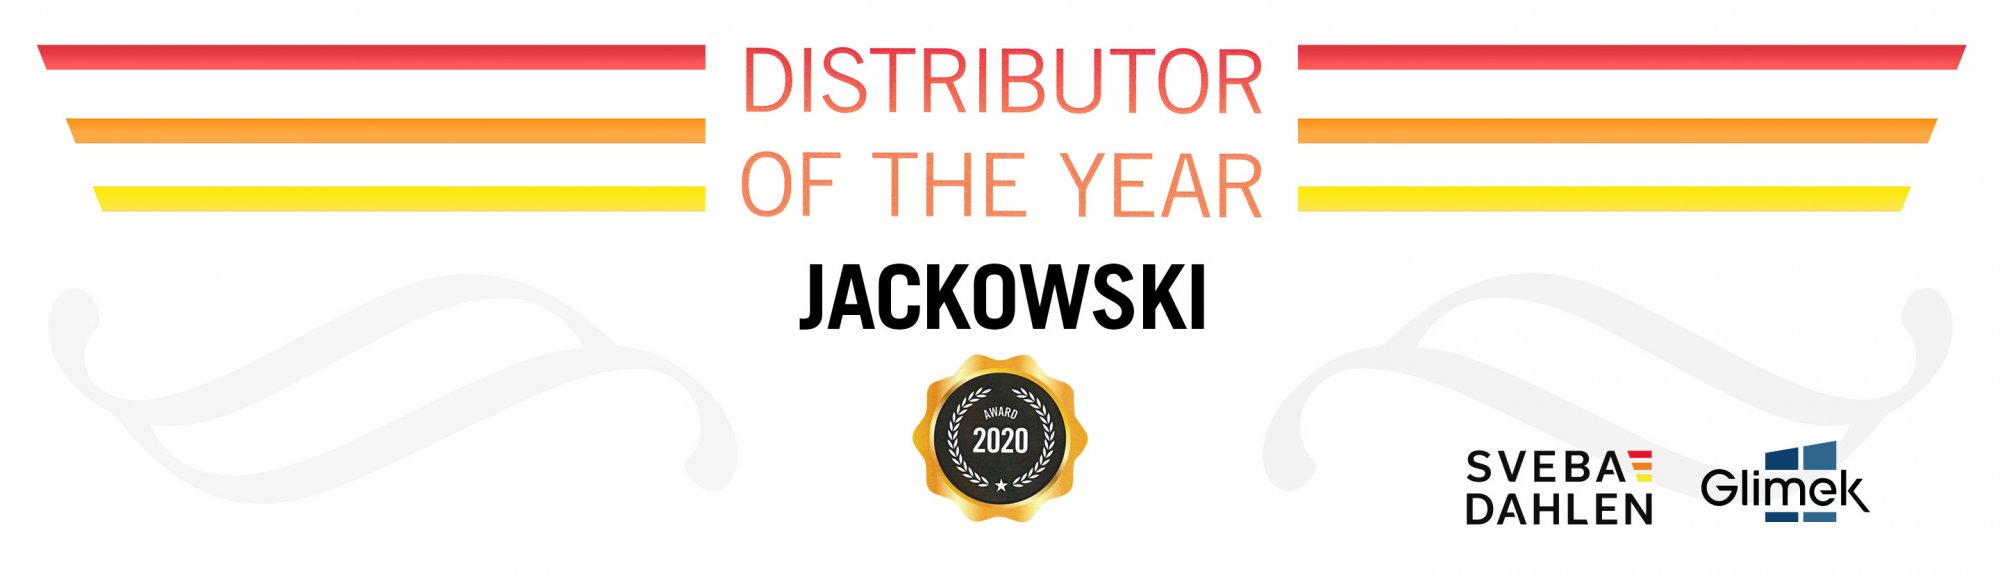 Sveba Dahlen Distributor of the year jackowski poland bakery equipment ovens bakery machines